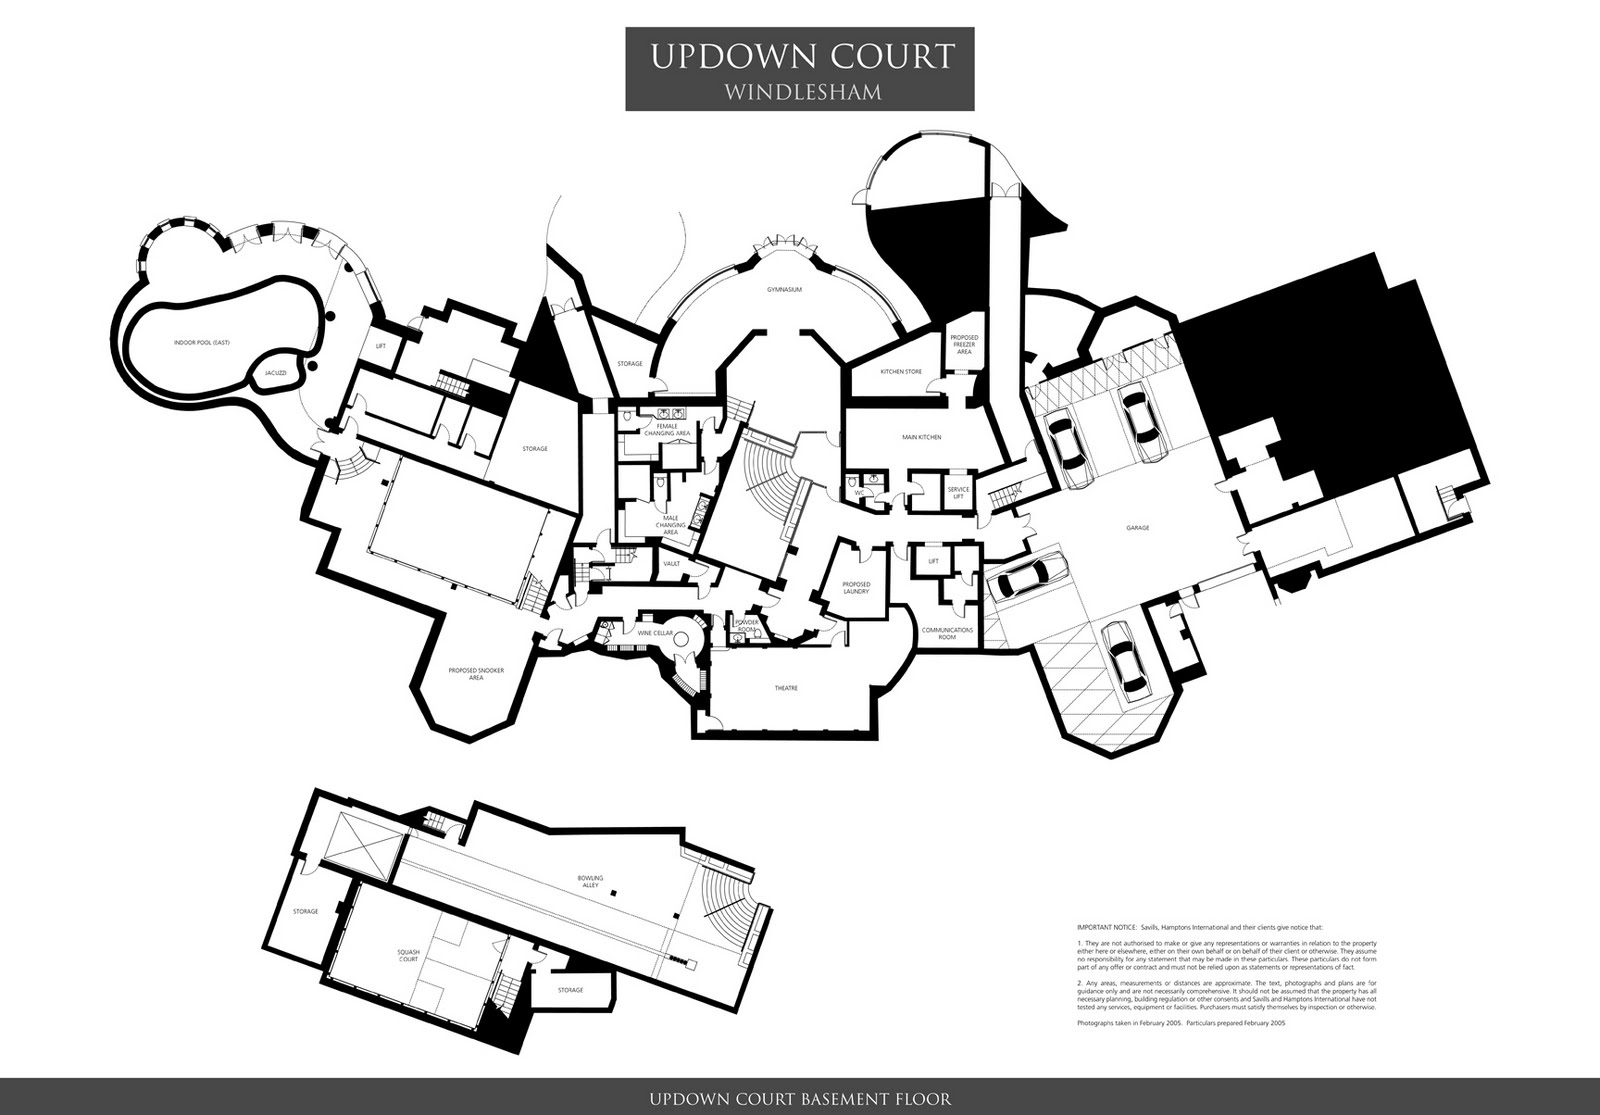 Real Estate Agent Property Updown Court Goes Down In A